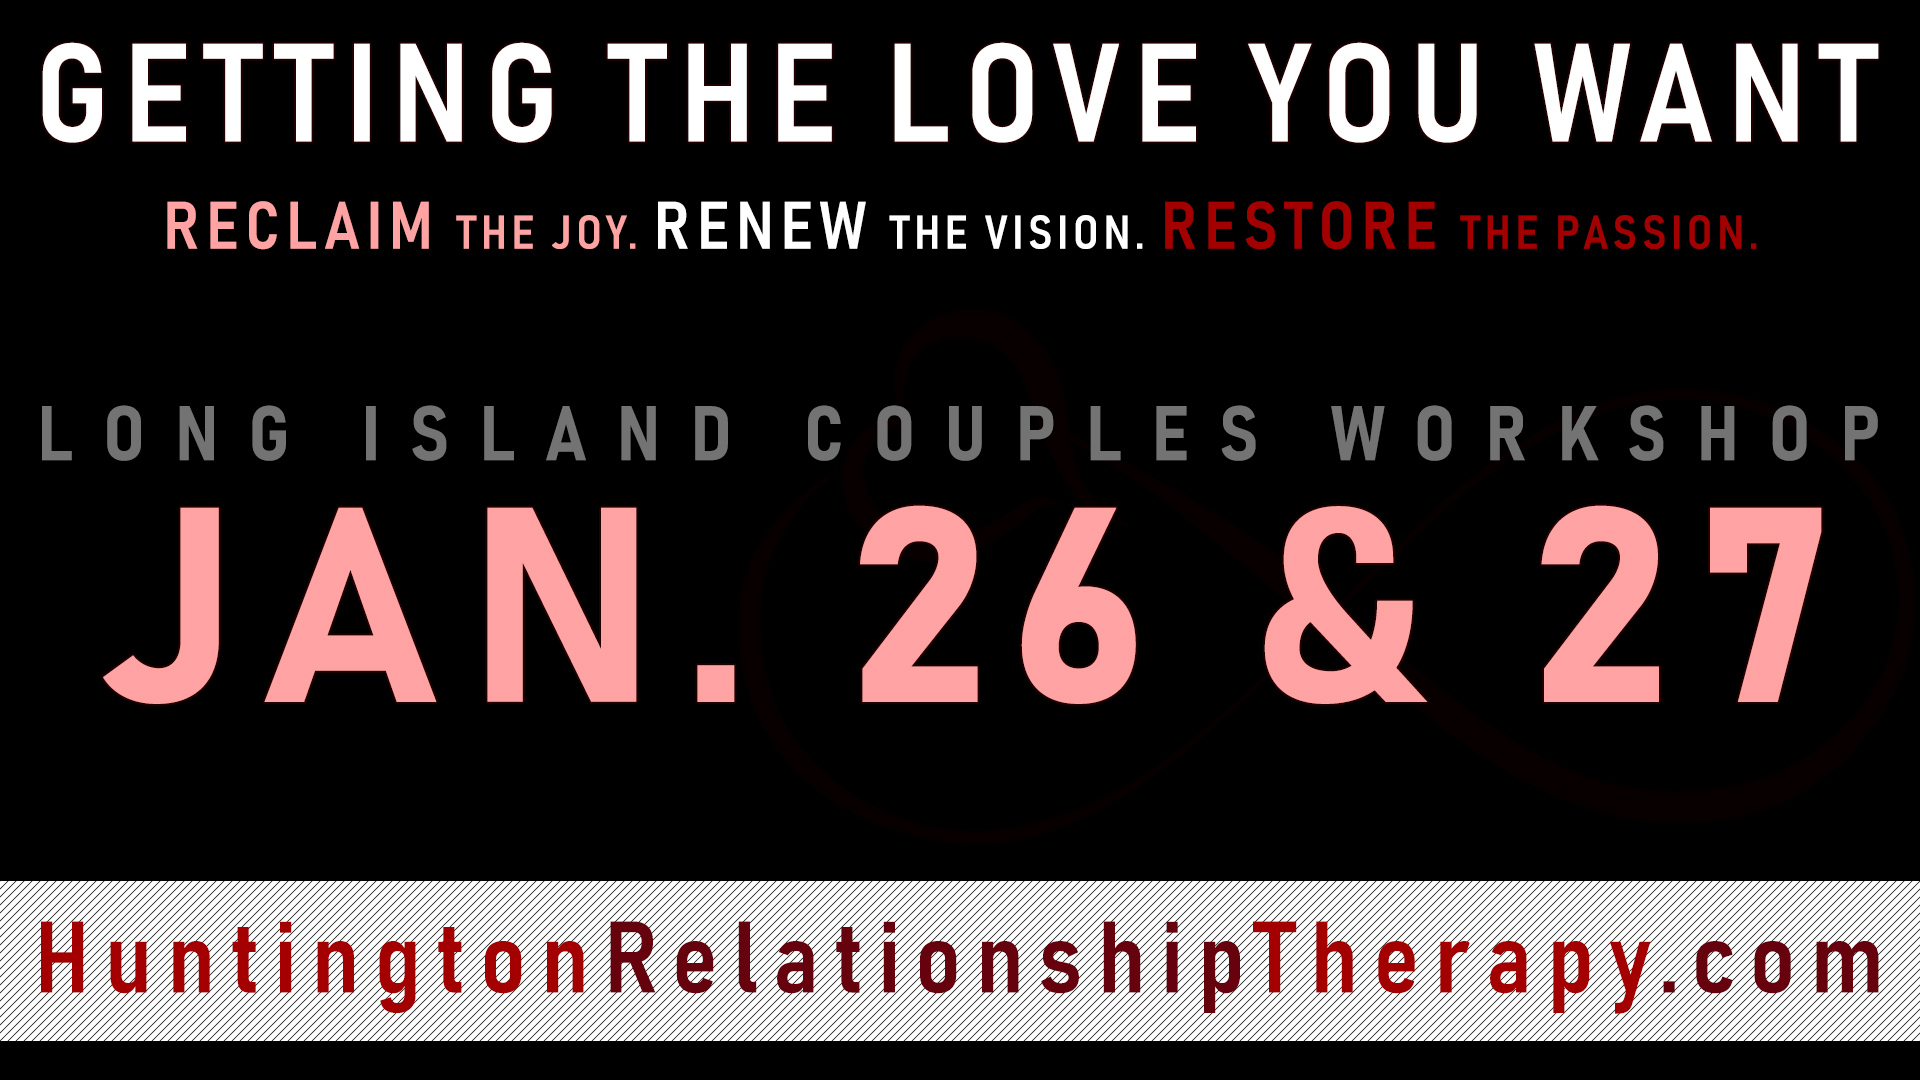 Getting The Love You Want Workshops - JAN 26-27, 2019